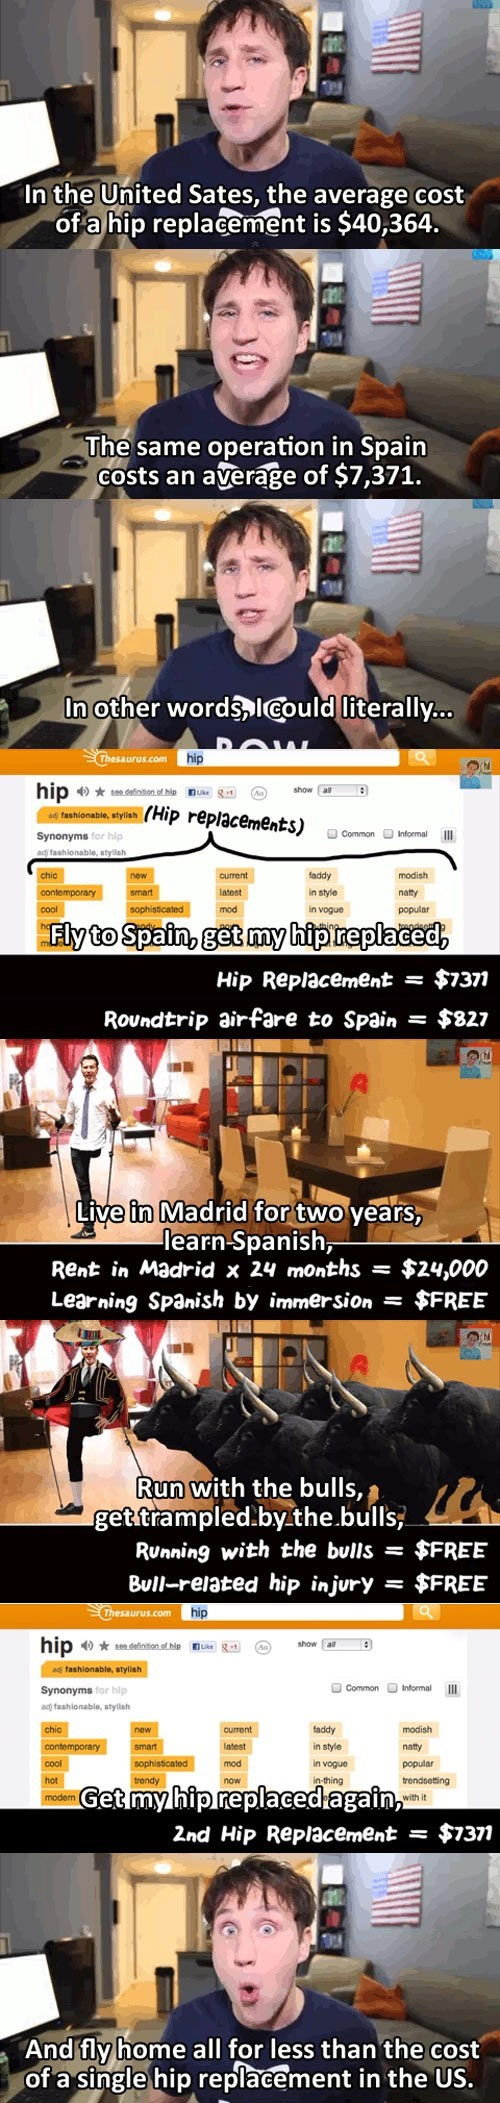 hip replacement insurance medicine Spain america - 8752294144